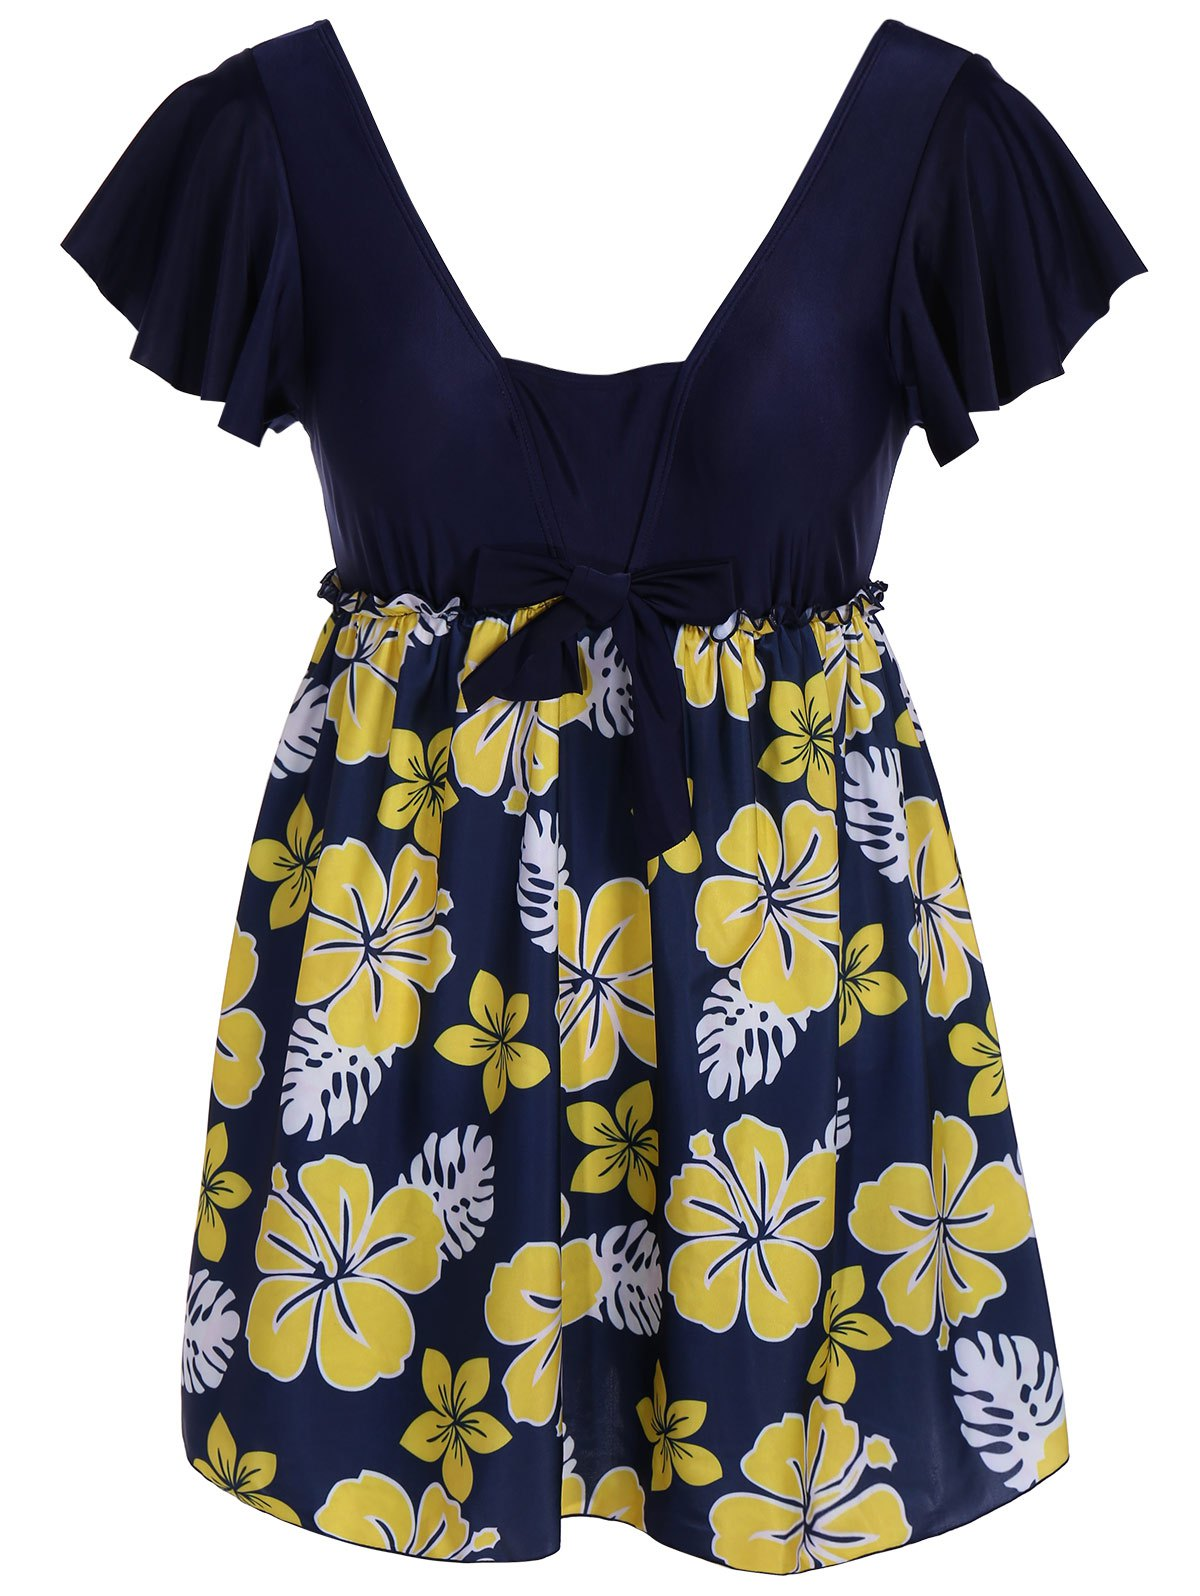 Refreshing Flower Print Square Collar Lace-Up Short Sleeve Swimsuit For Women - CADETBLUE 4XL